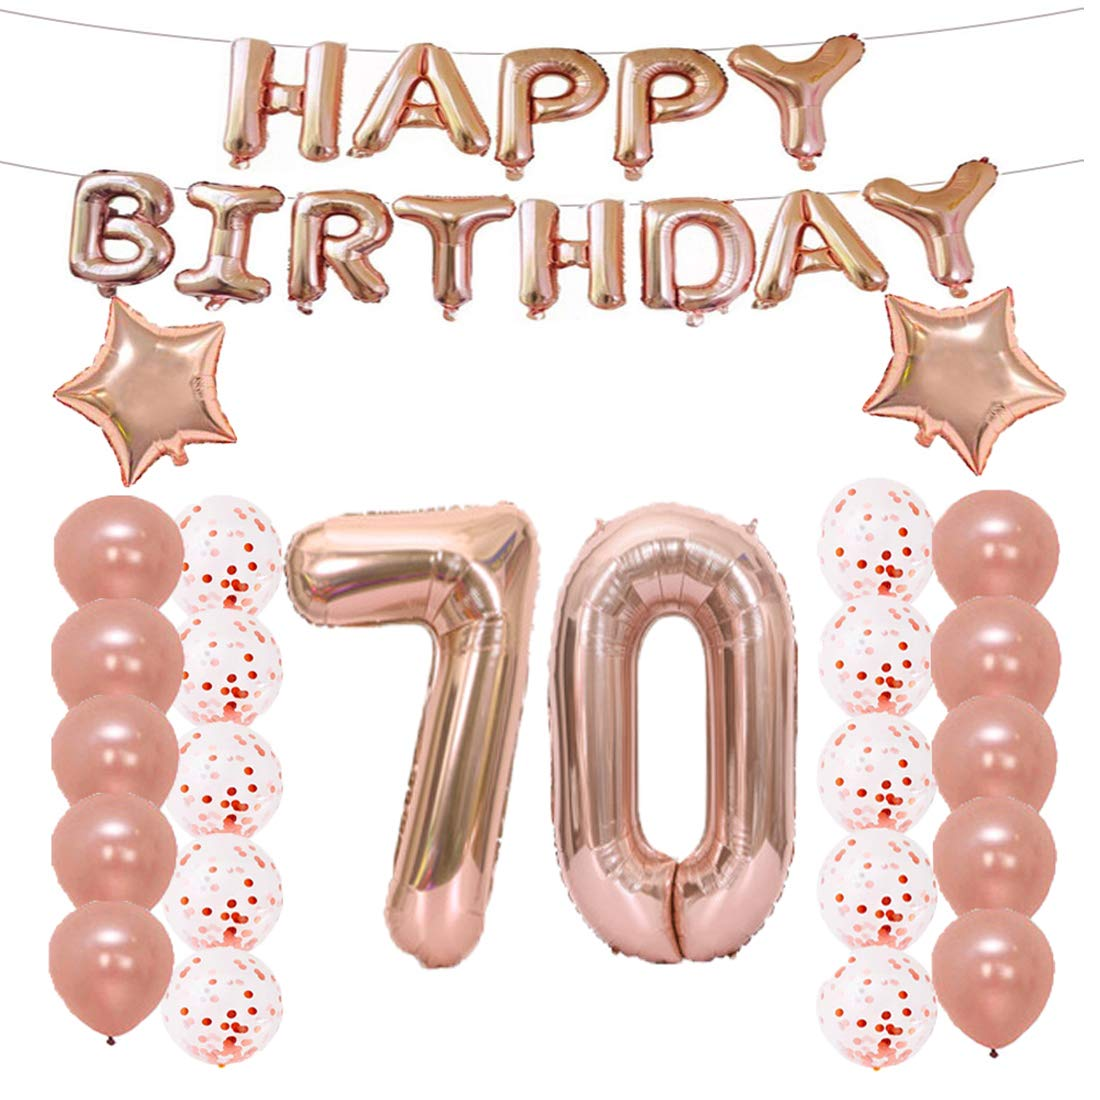 70th Birthday Decorations Party Supplies70th Balloons Rose GoldNumber 70 Mylar BalloonLatex Balloon DecorationGreat Sweet Gifts